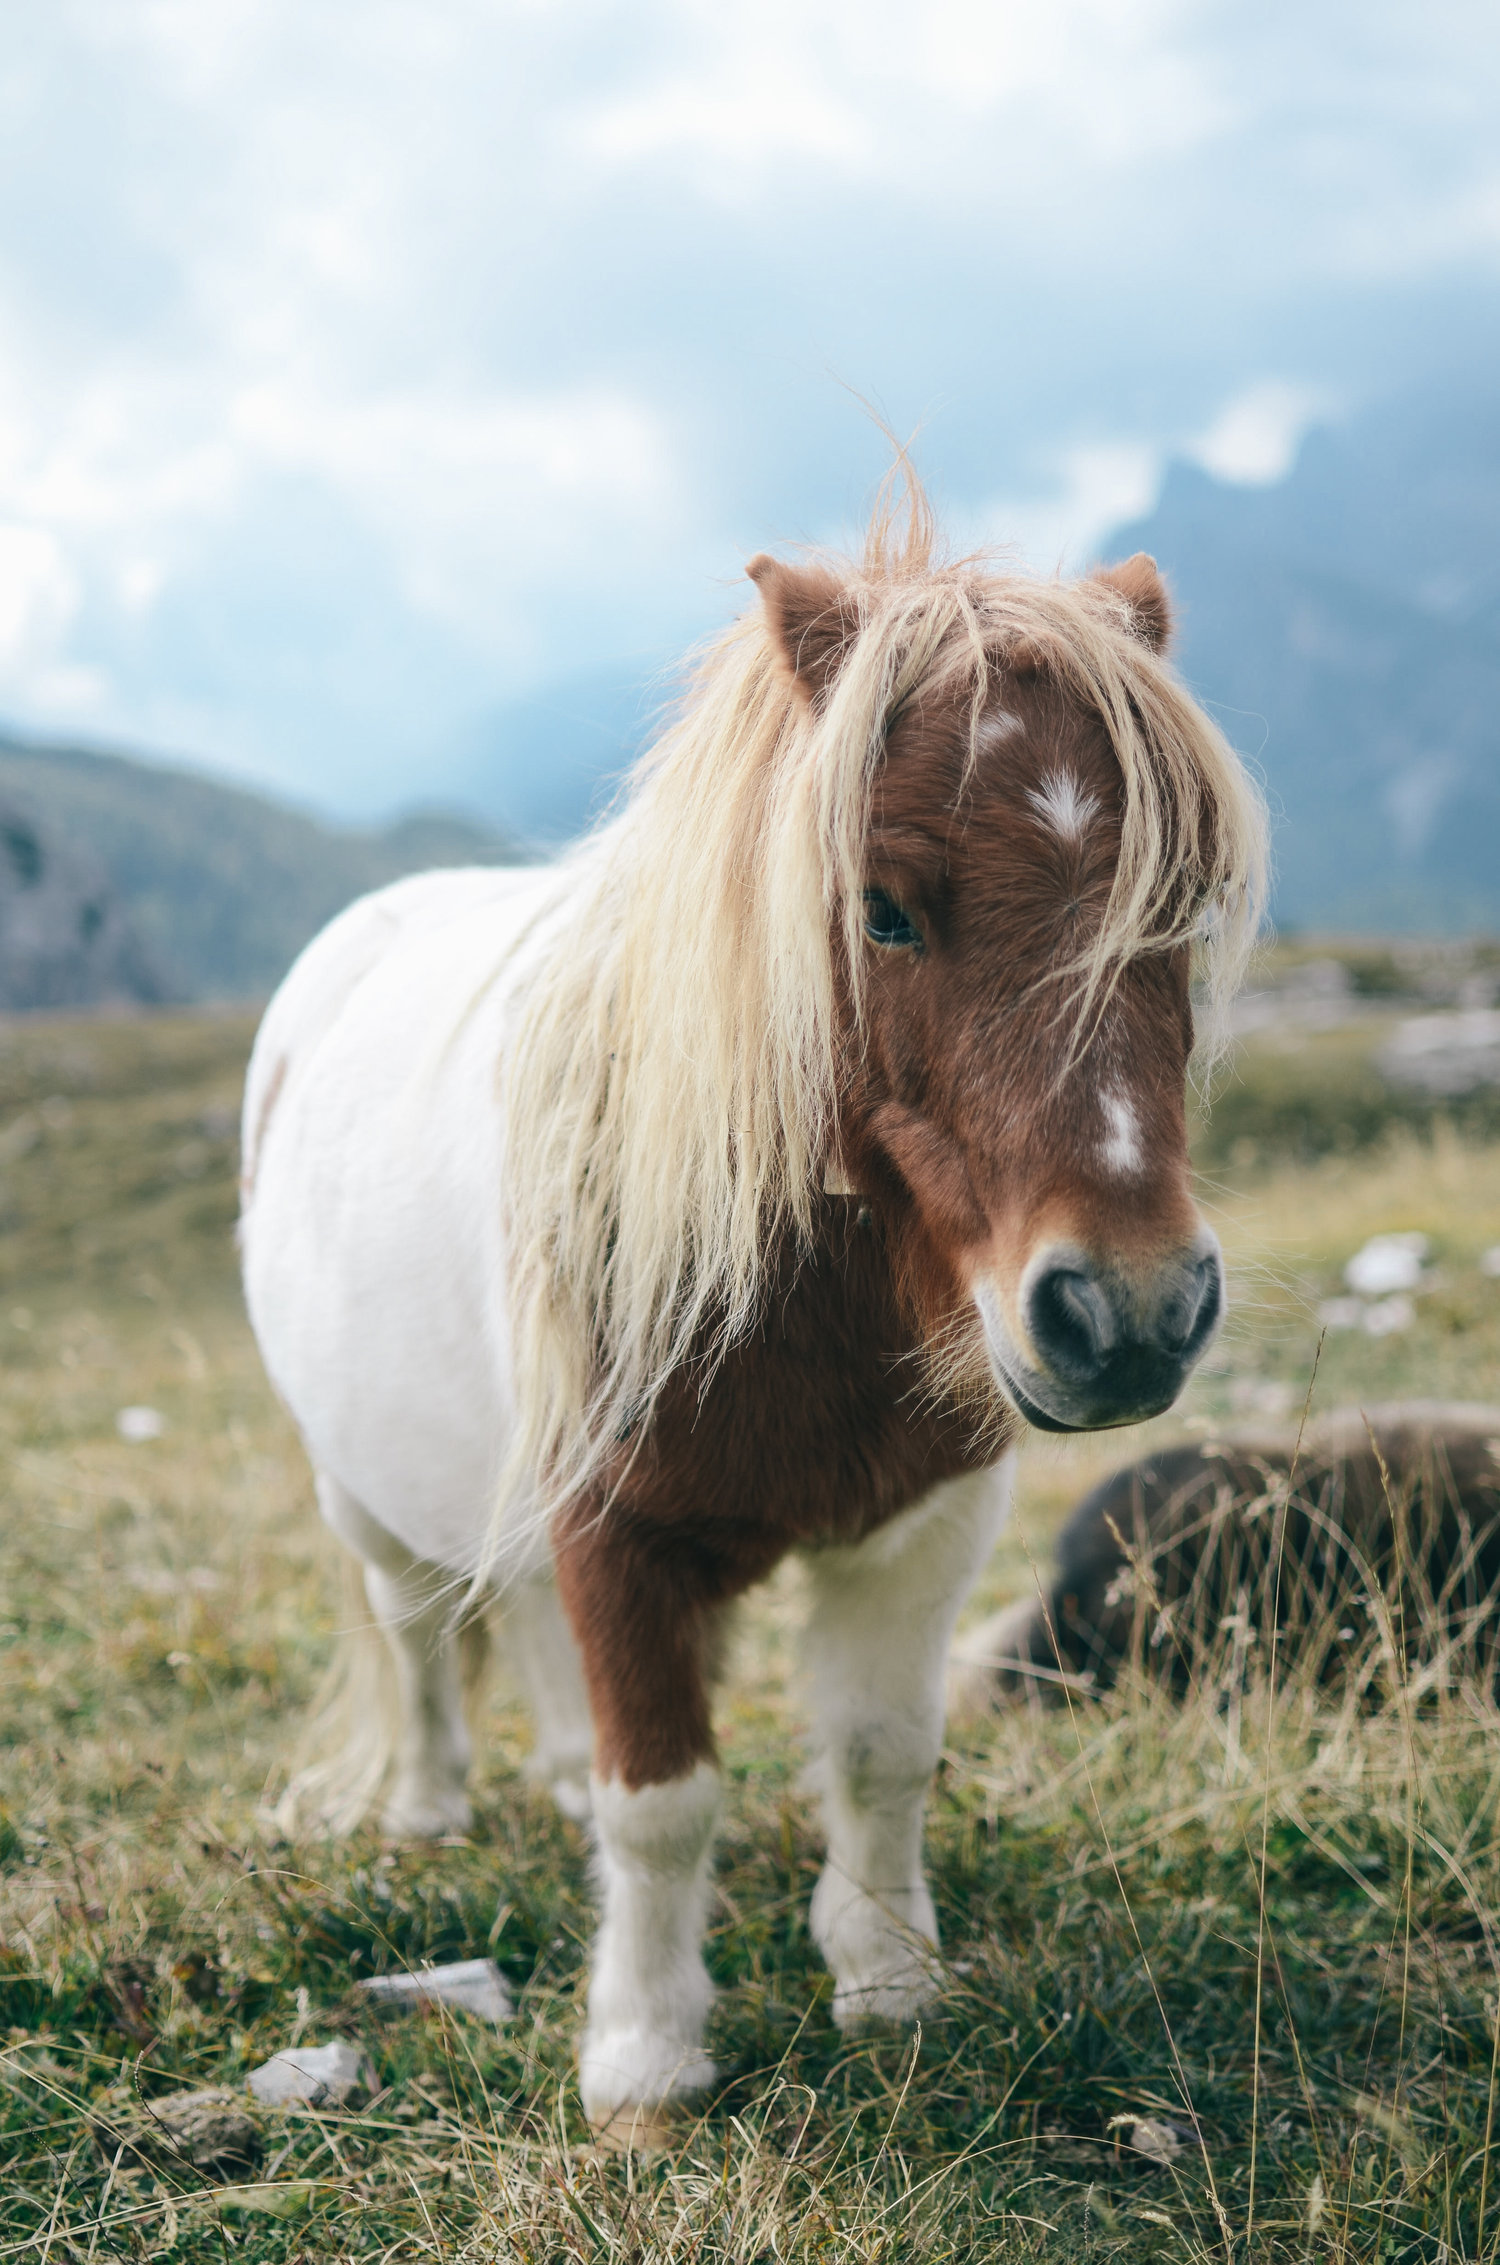 dolomites-why-the-italian-alps-should-be-your-next-mountain-adventure-+travel-blog-tiny-horse.jpg